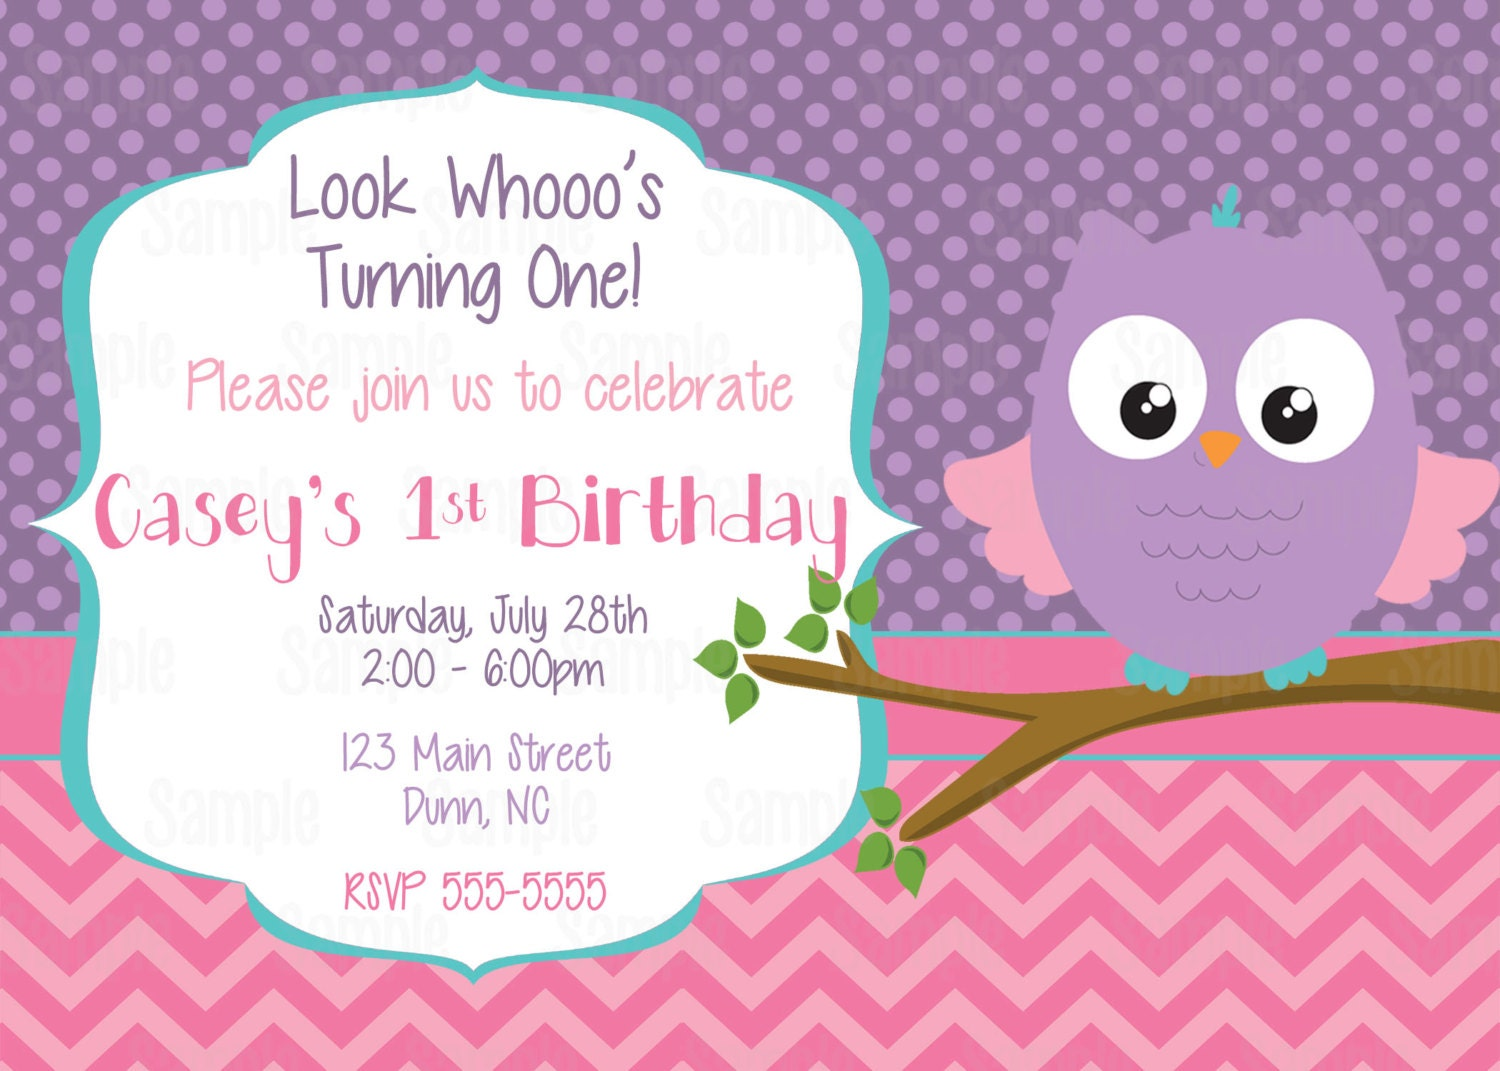 Printable Look Whoos Turning one owl invitation plus FREE